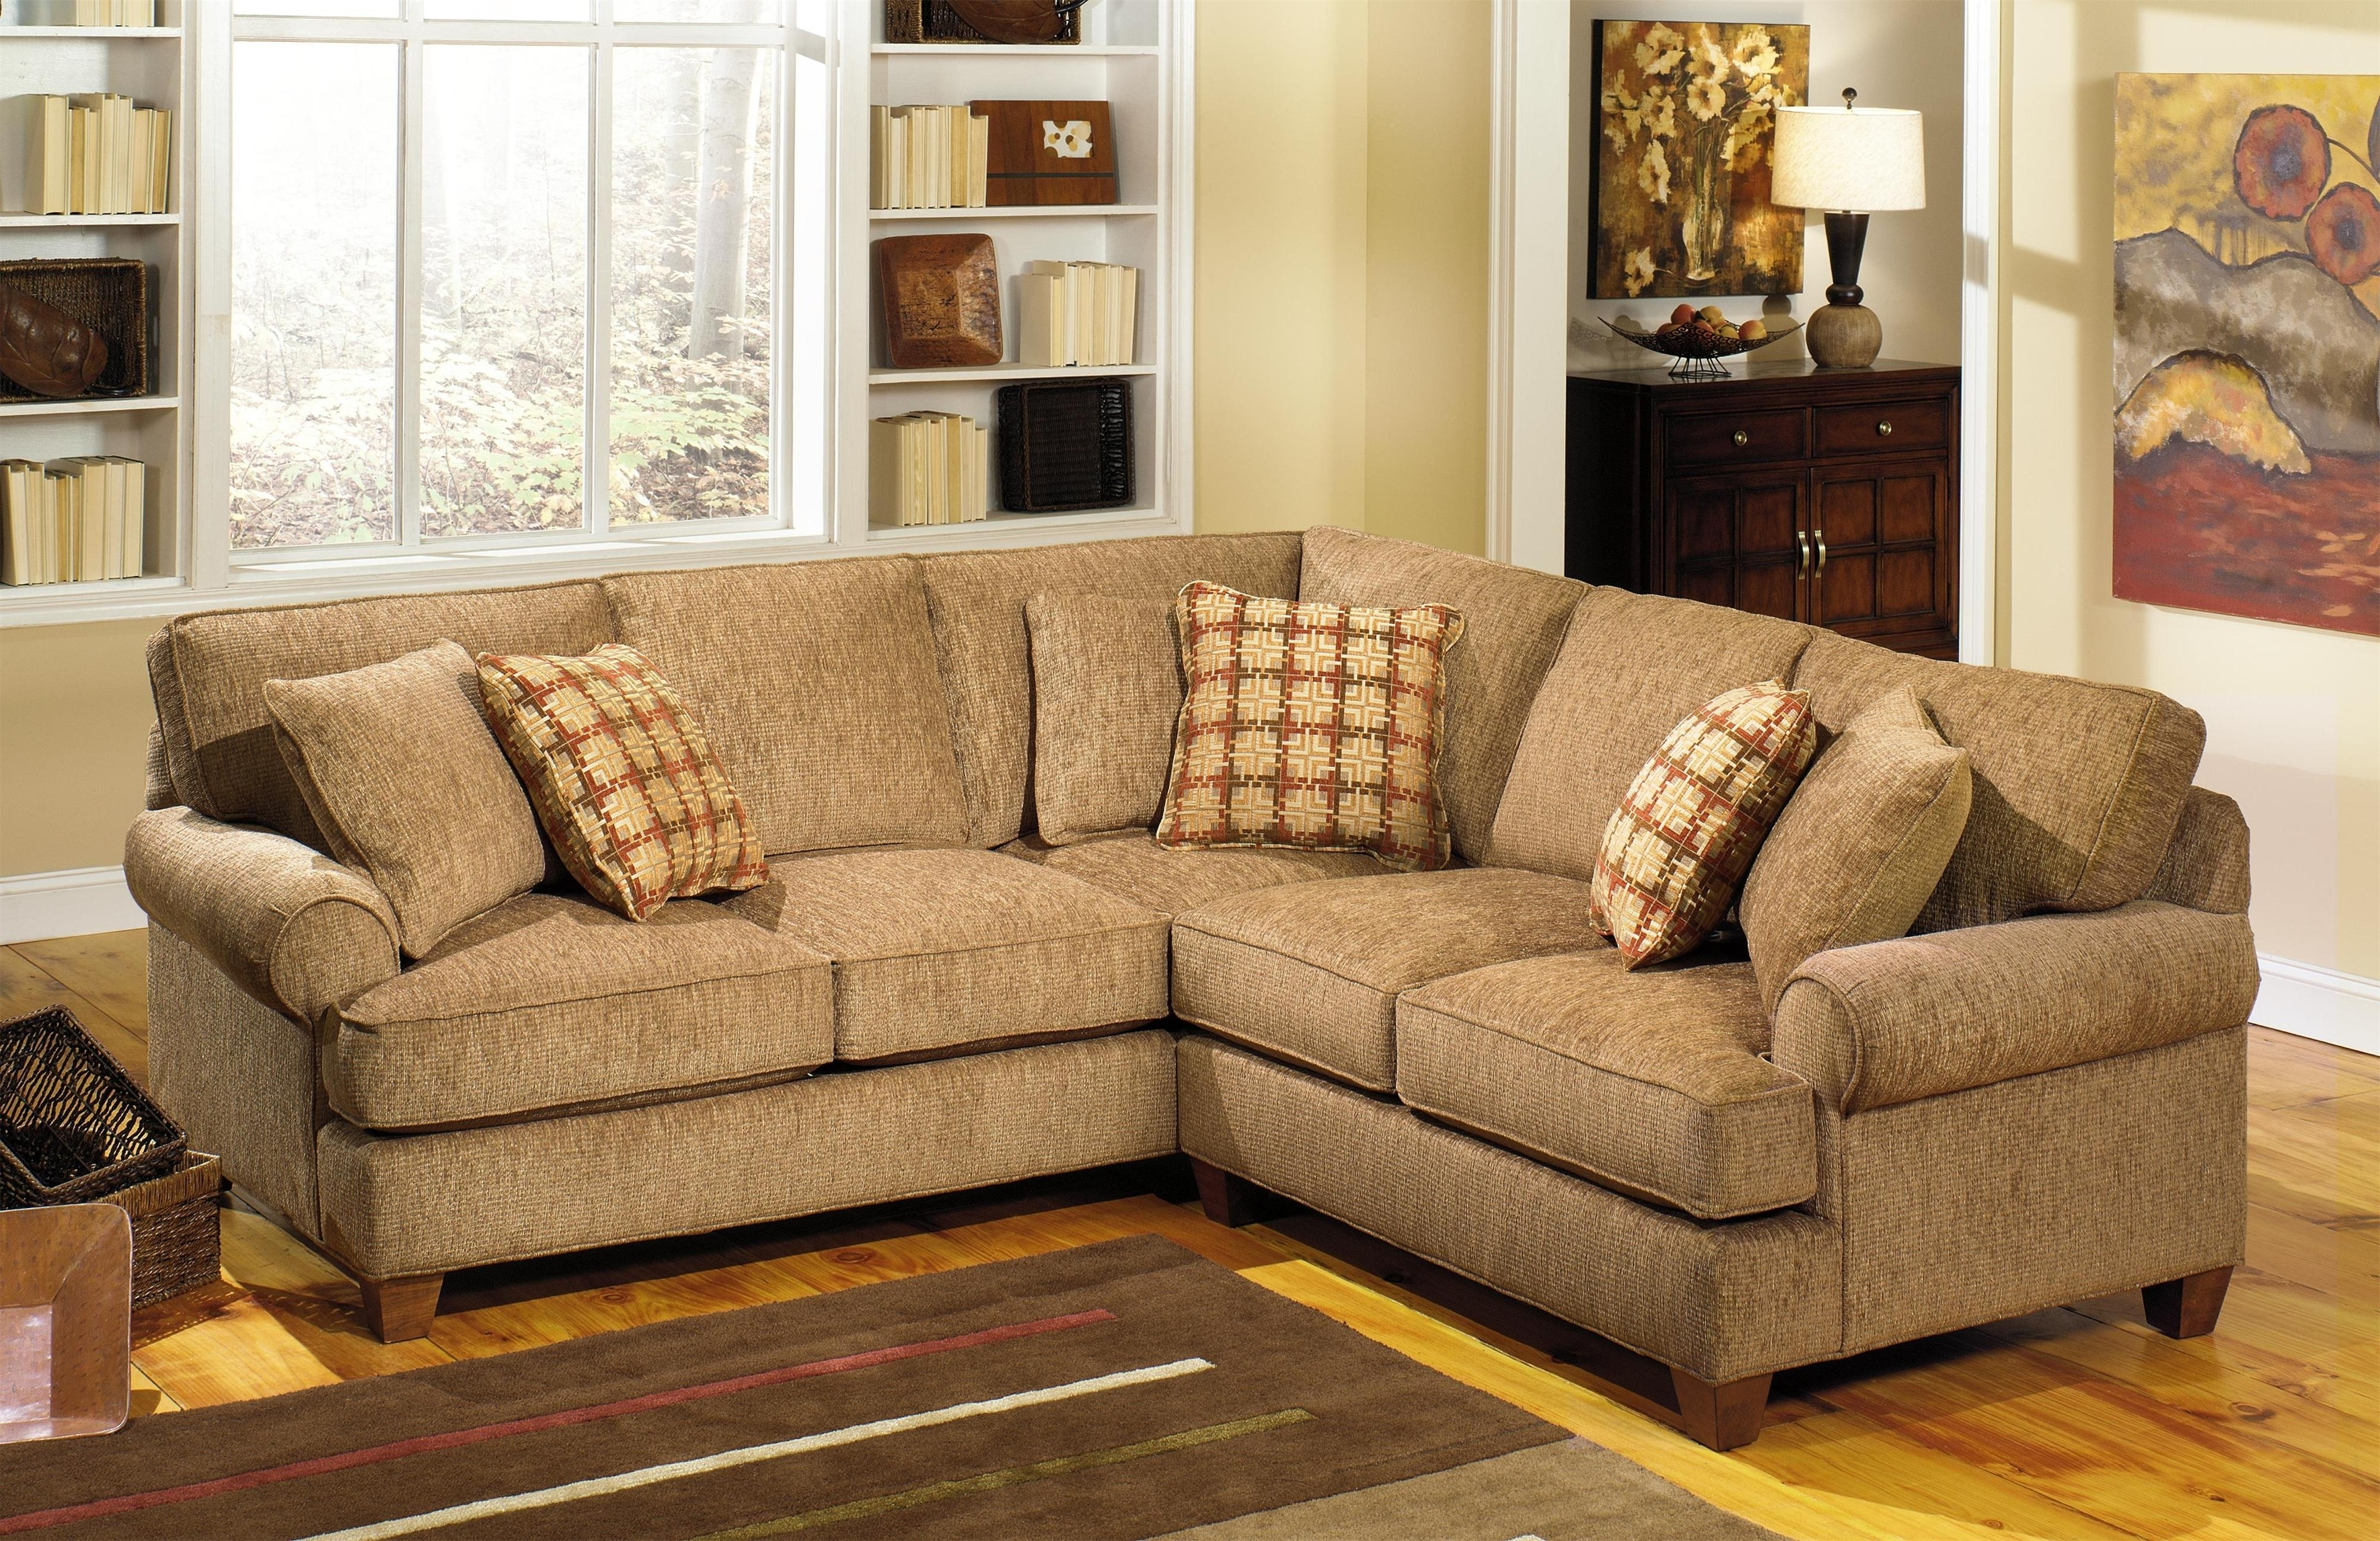 Widely Used Sofa : Craftmaster Sectional Sensational Craftmaster Sectional Pertaining To Craftsman Sectional Sofas (View 19 of 20)